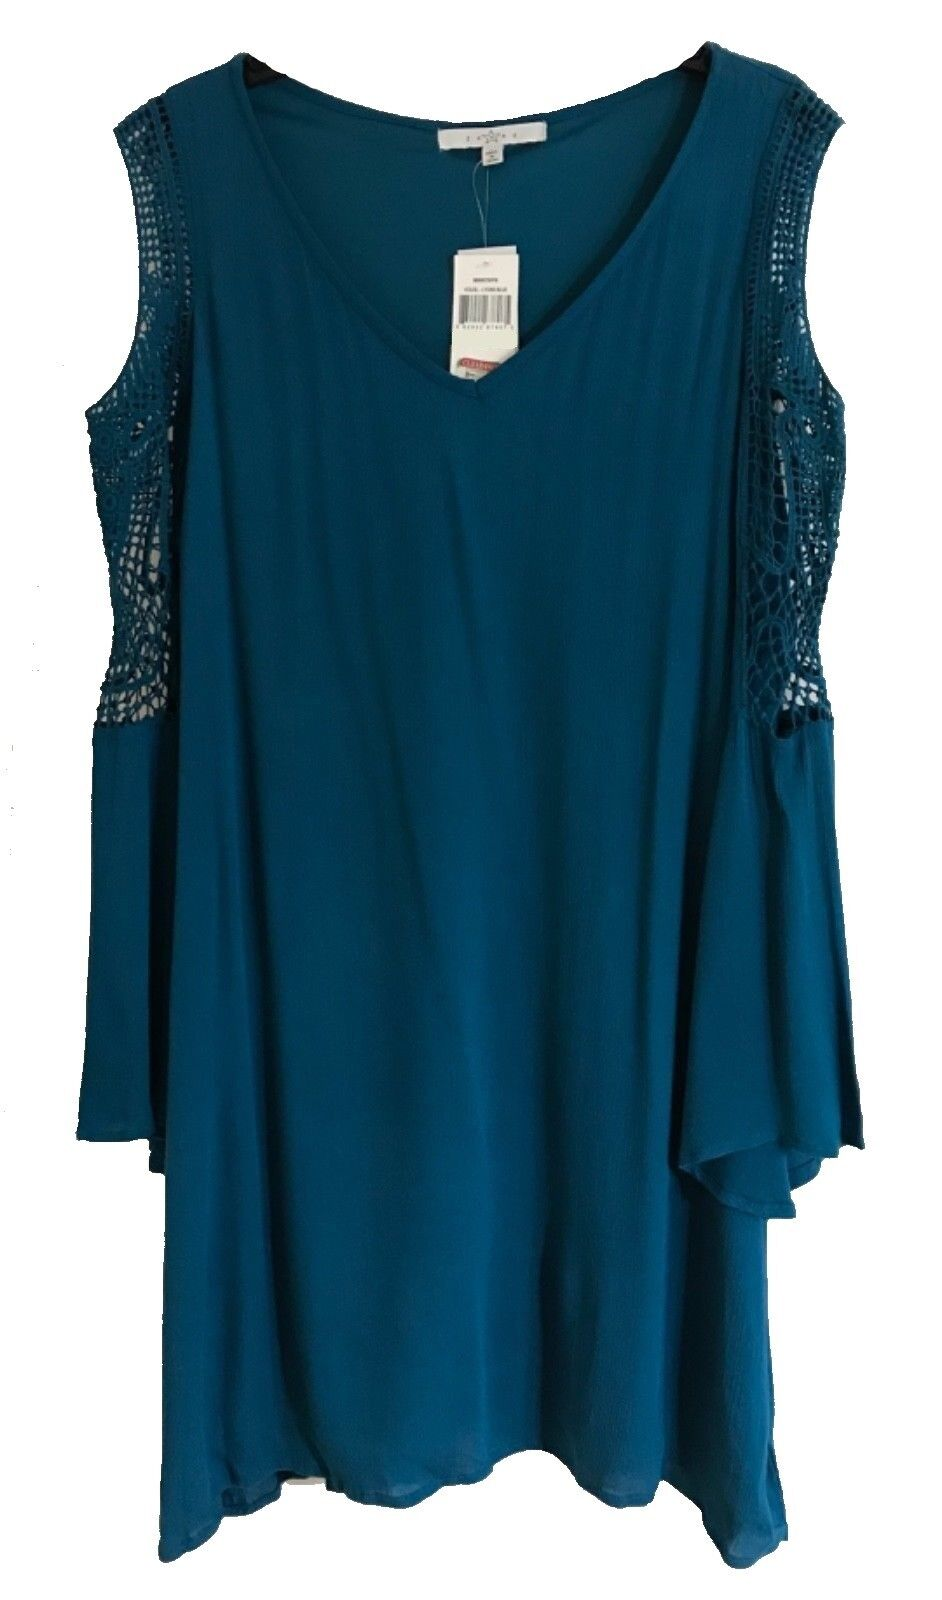 Fever Women's Cold Shoulder Lace Trim Bell Sleeves Dress, Lyons bluee, M